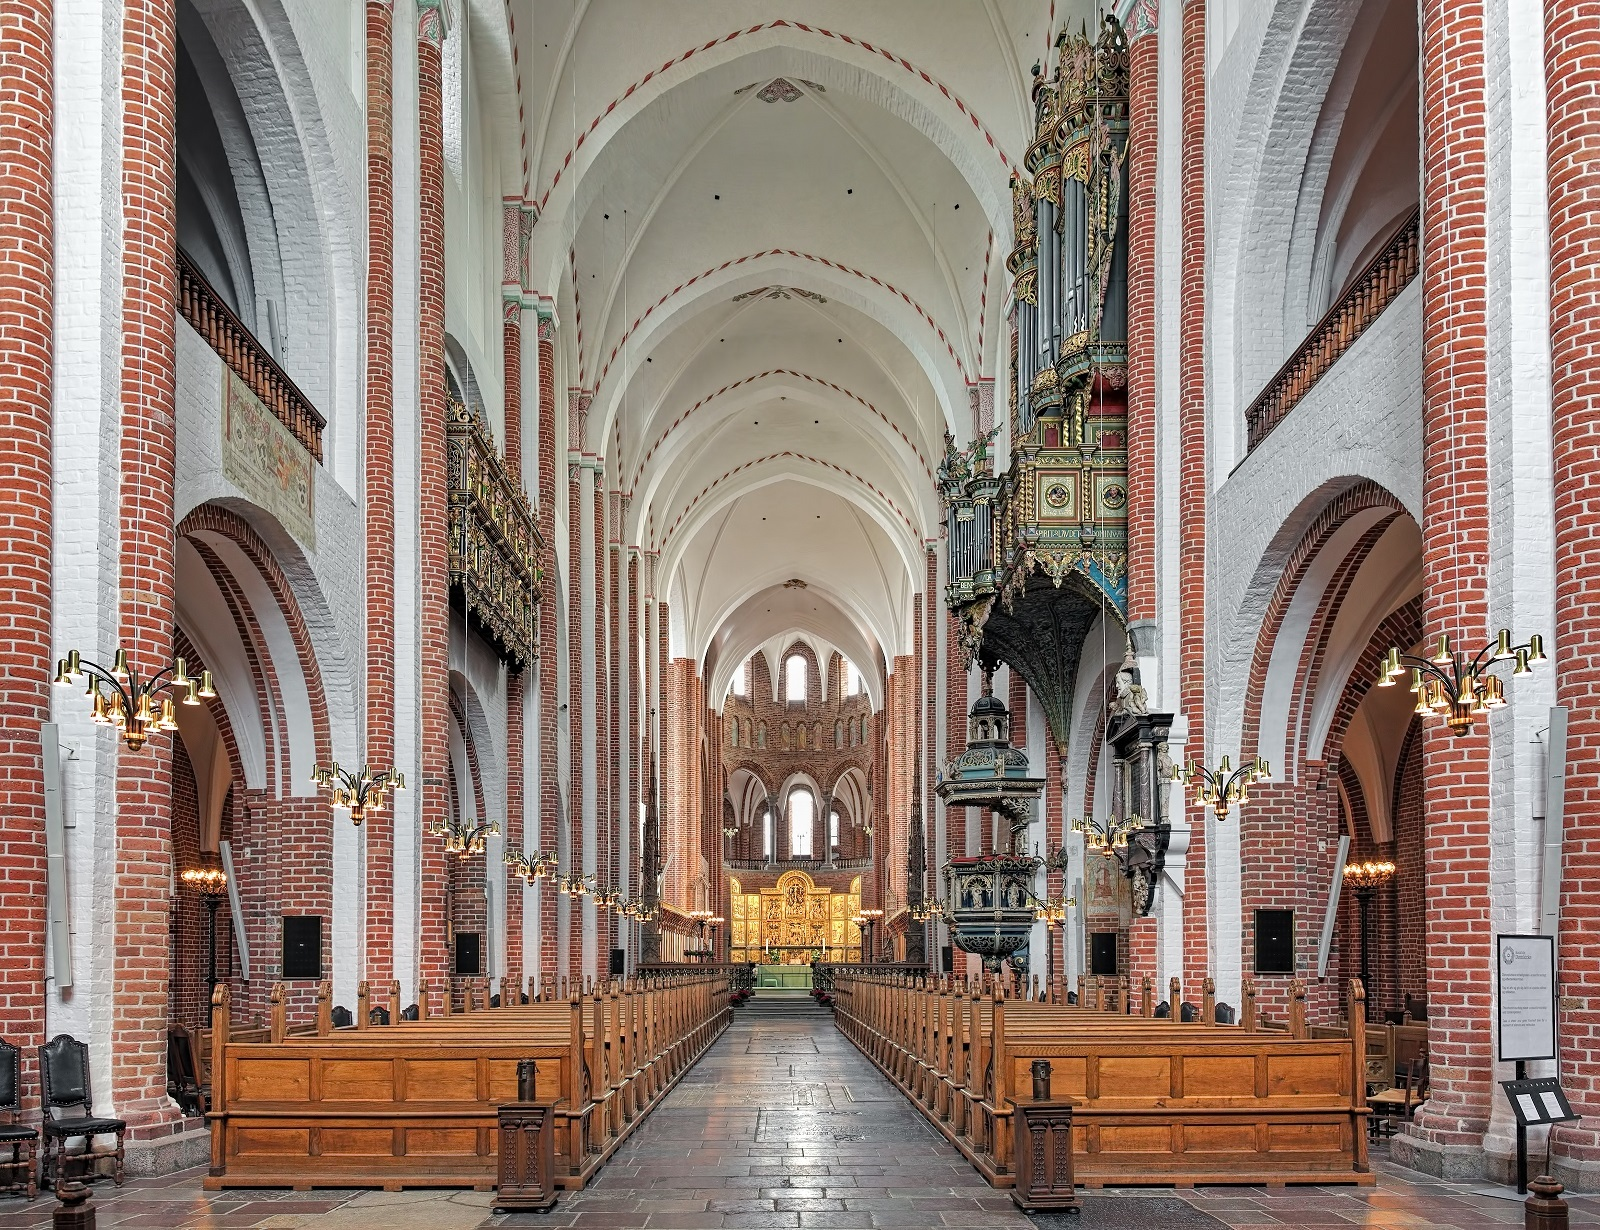 Interior of Roskilde Cathedral, Denmark